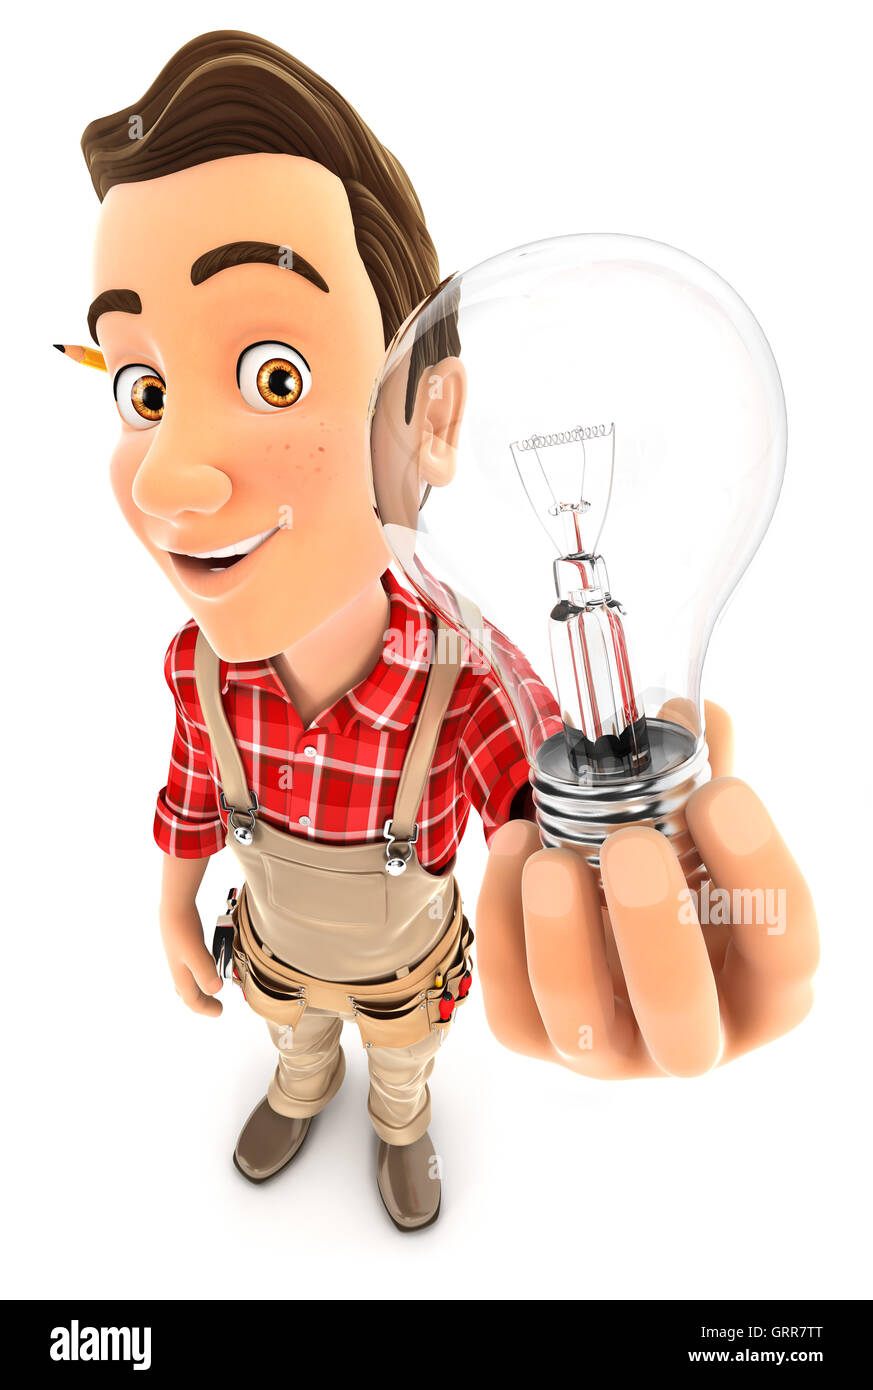 3d handyman holding a light bulb, illustration with isolated white background Stock Photo